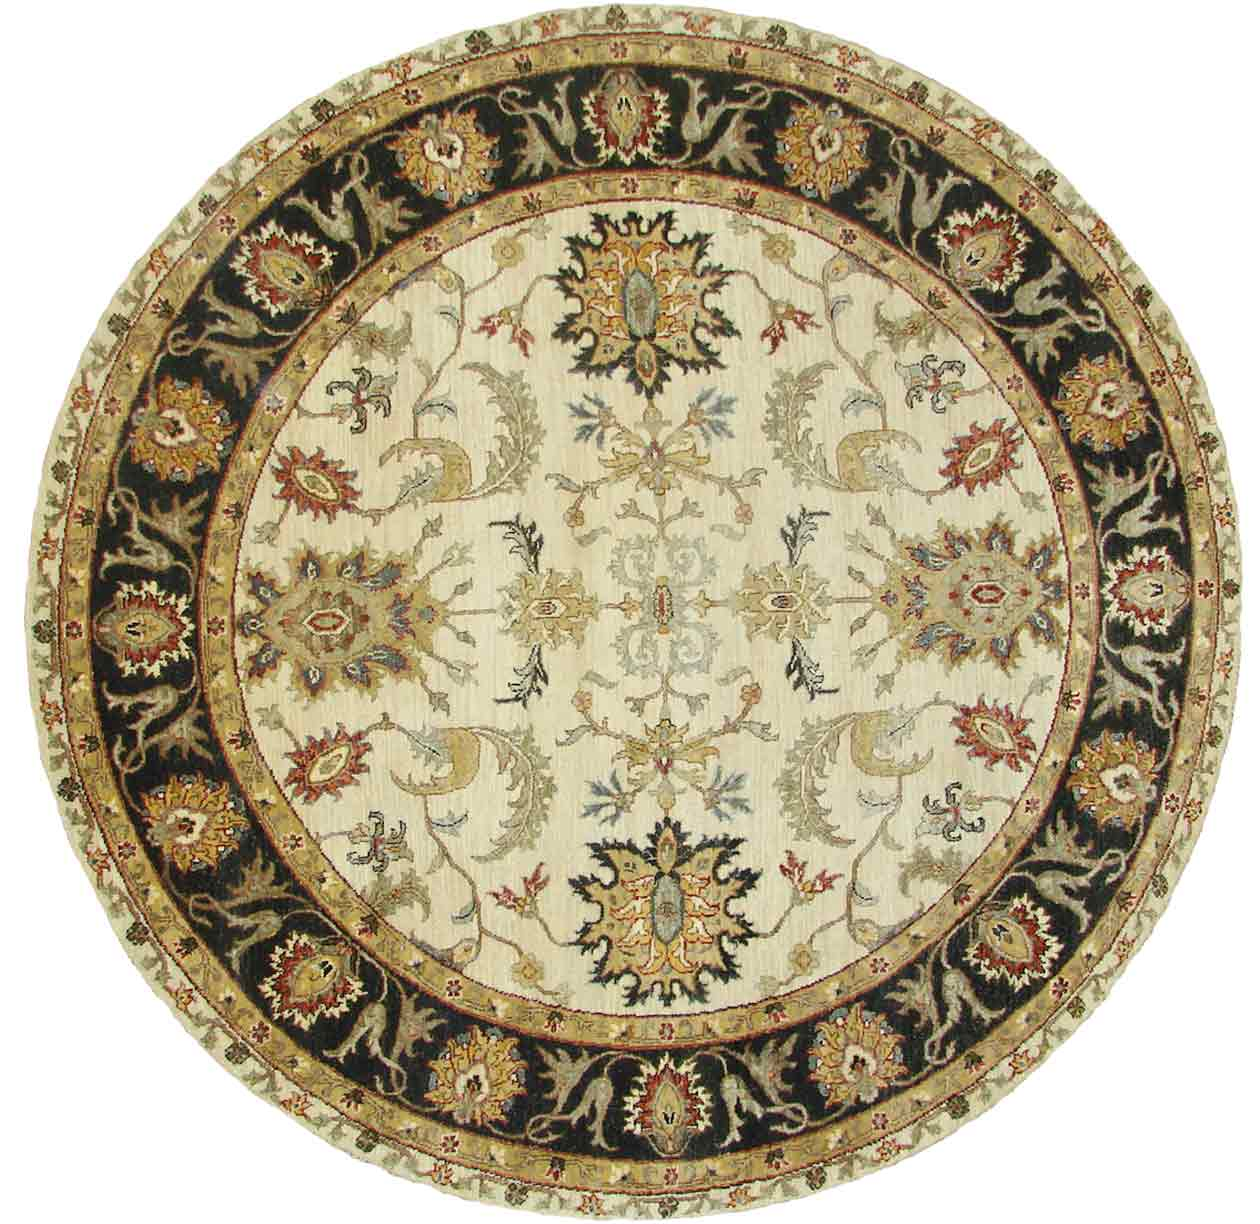 Round Rugs 18863 Sultan Ivory Beige Amp Black Charcoal